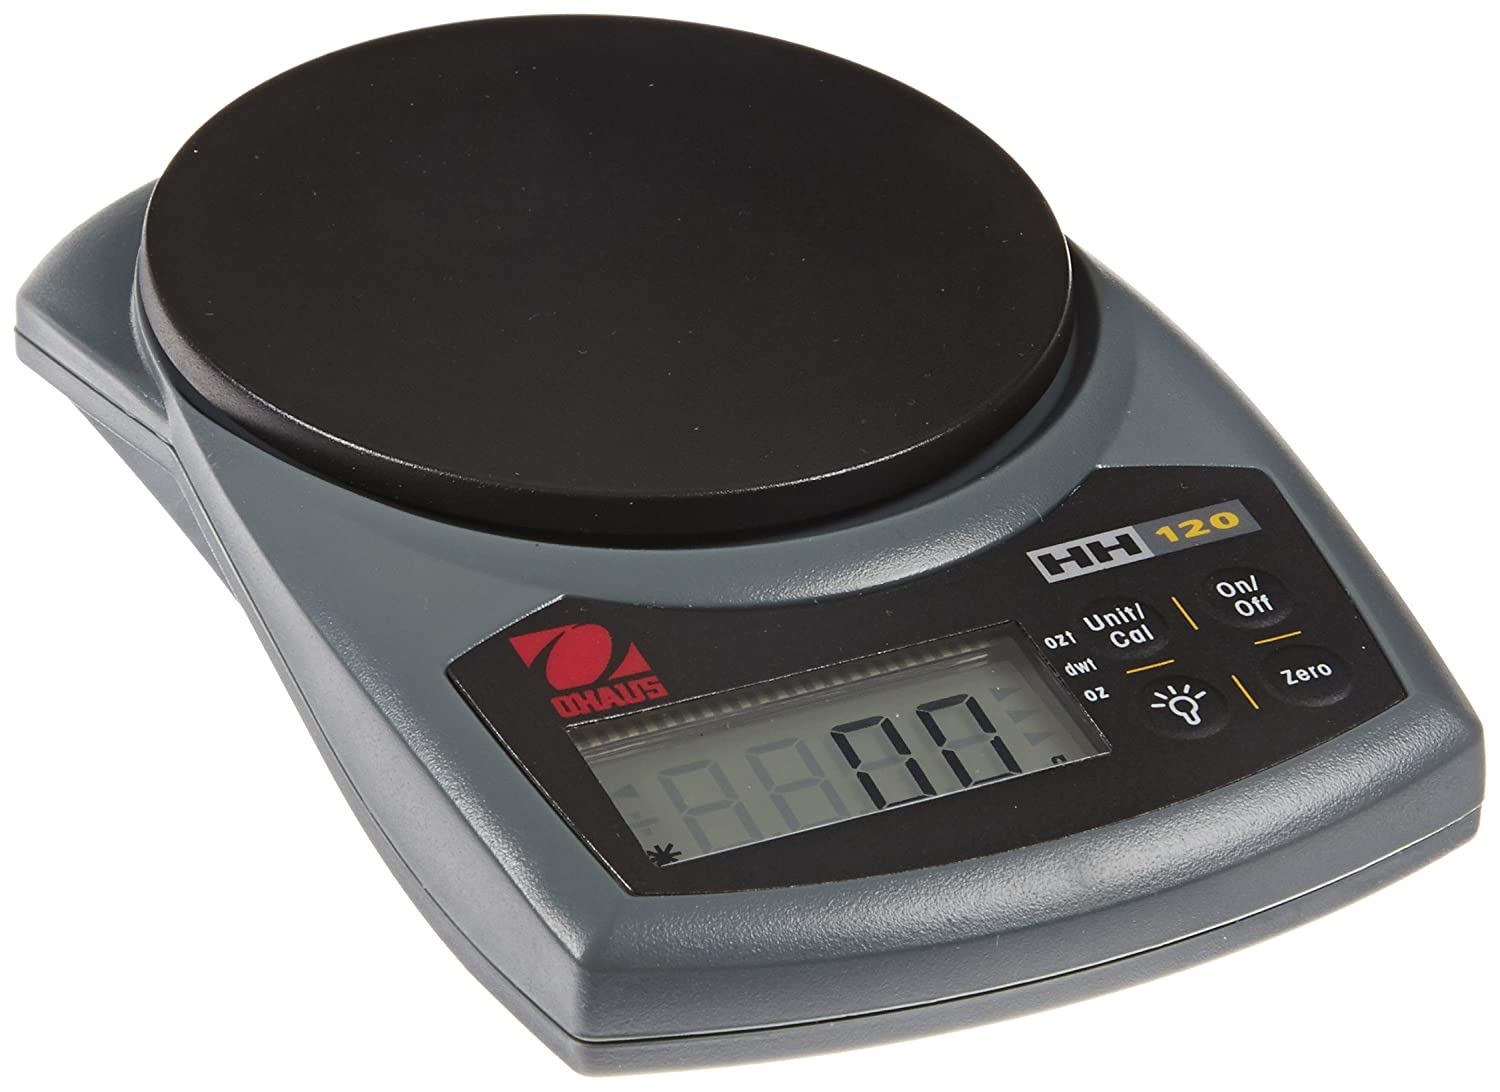 Ohaus HH120D Hand-Held Series Portable Scales, 60g/120g Capacity, 0.1g/0.2g Readability Ohaus Corporation